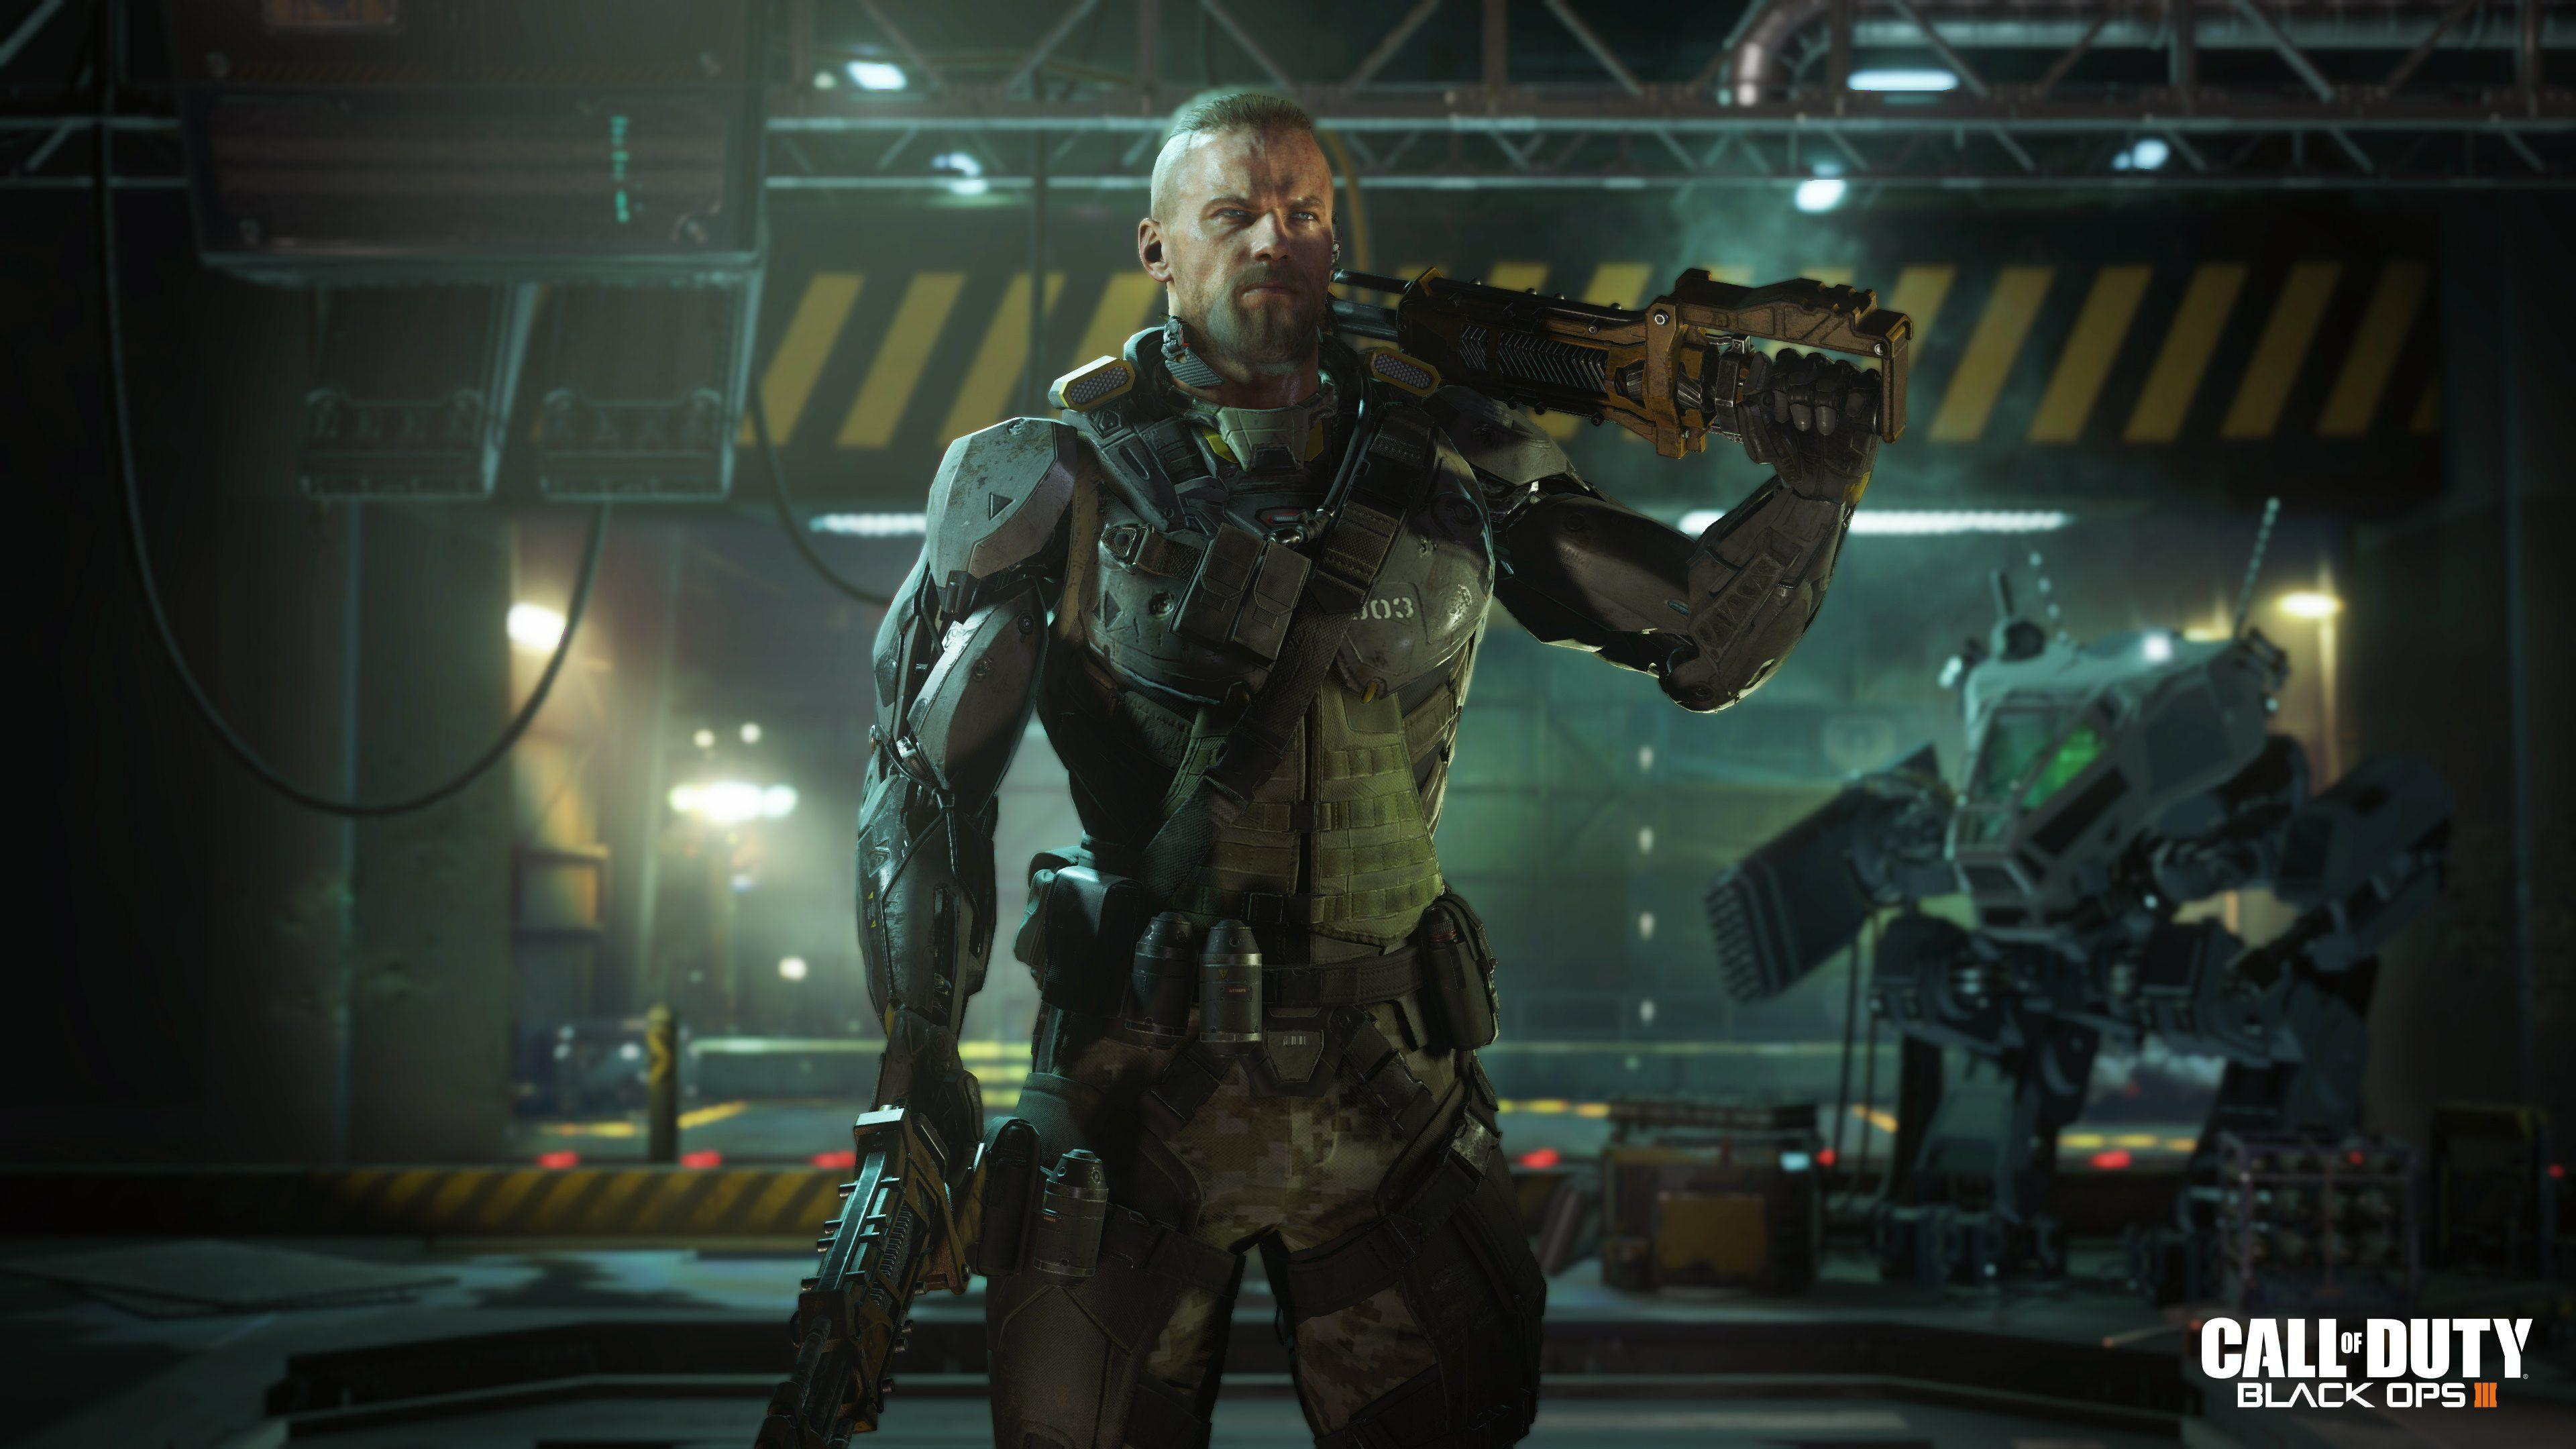 Call Of Duty Black Ops 3 Hd Wallpapers Wallpaper Cave